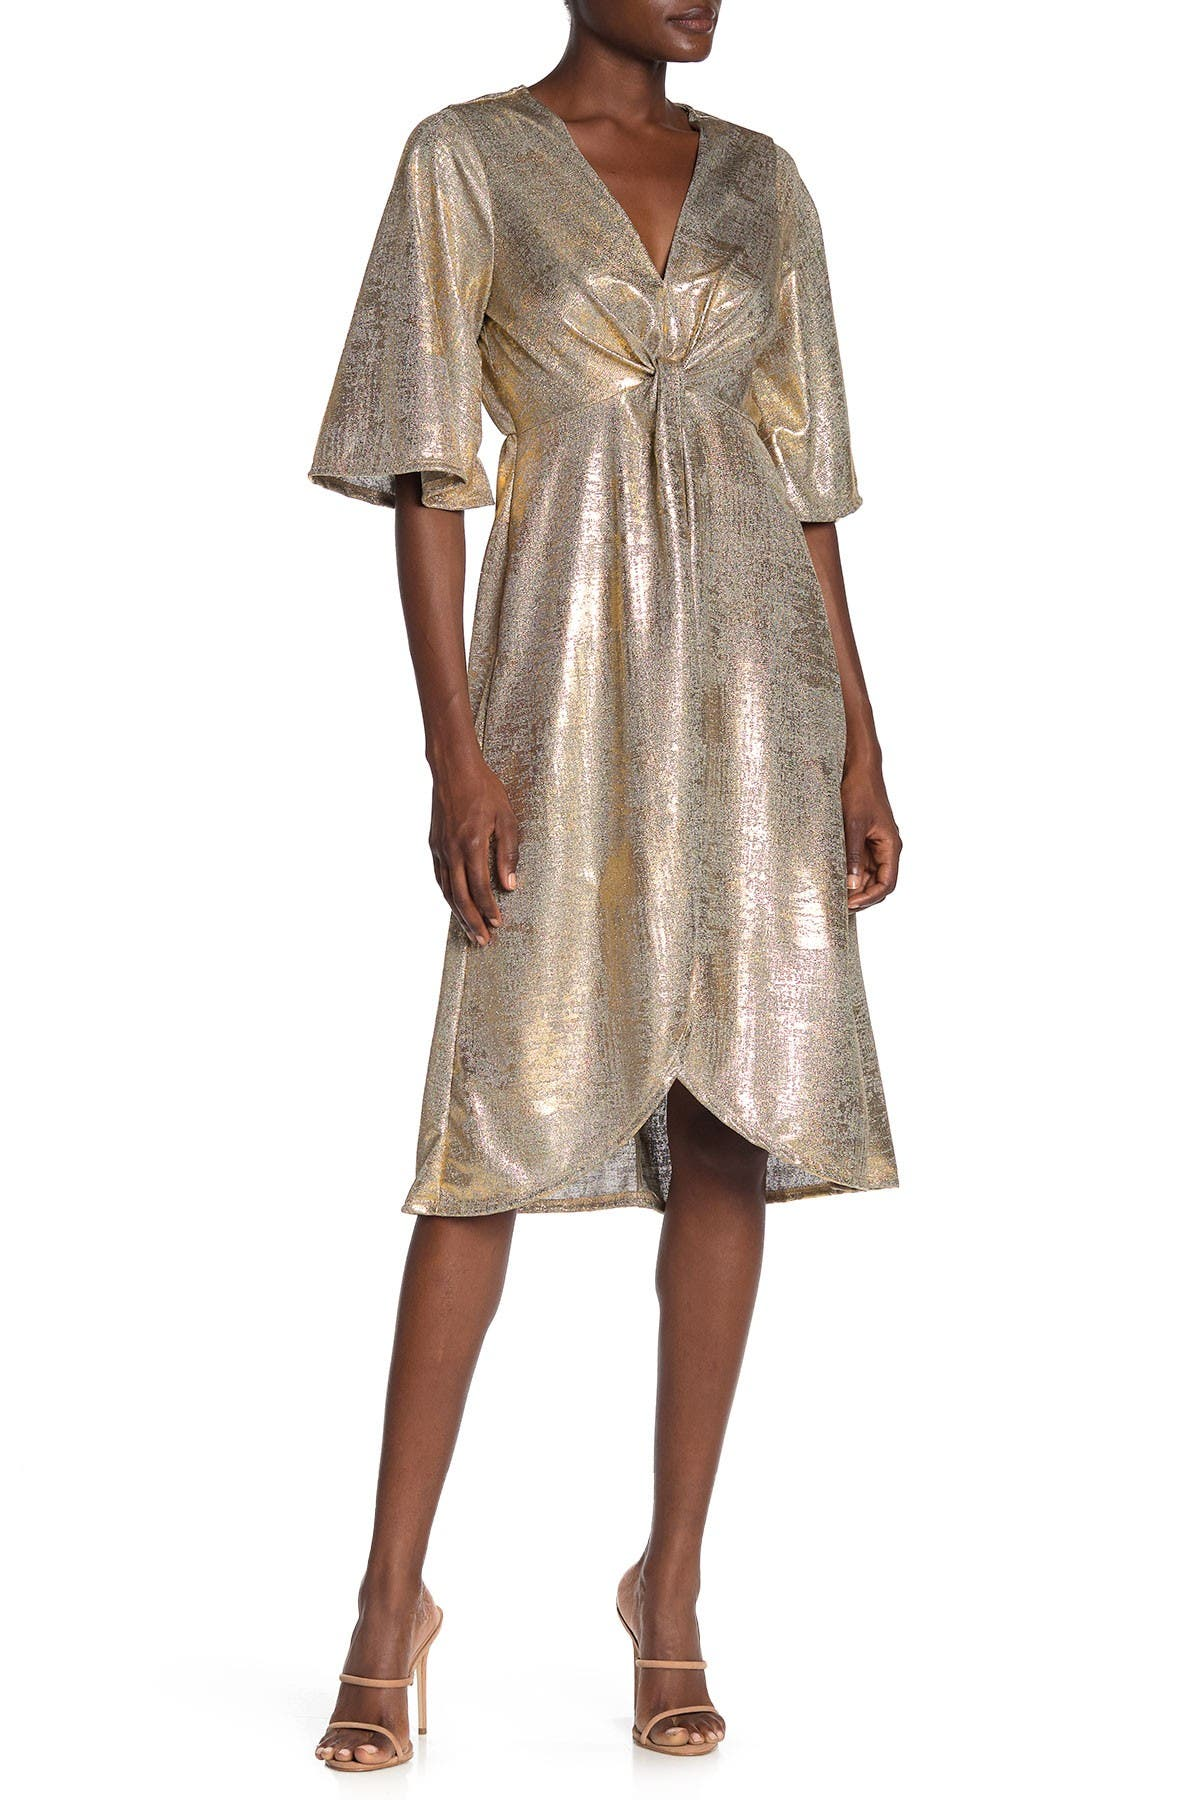 Image of SUPERFOXX Wrap Front Metallic Jersey Dress